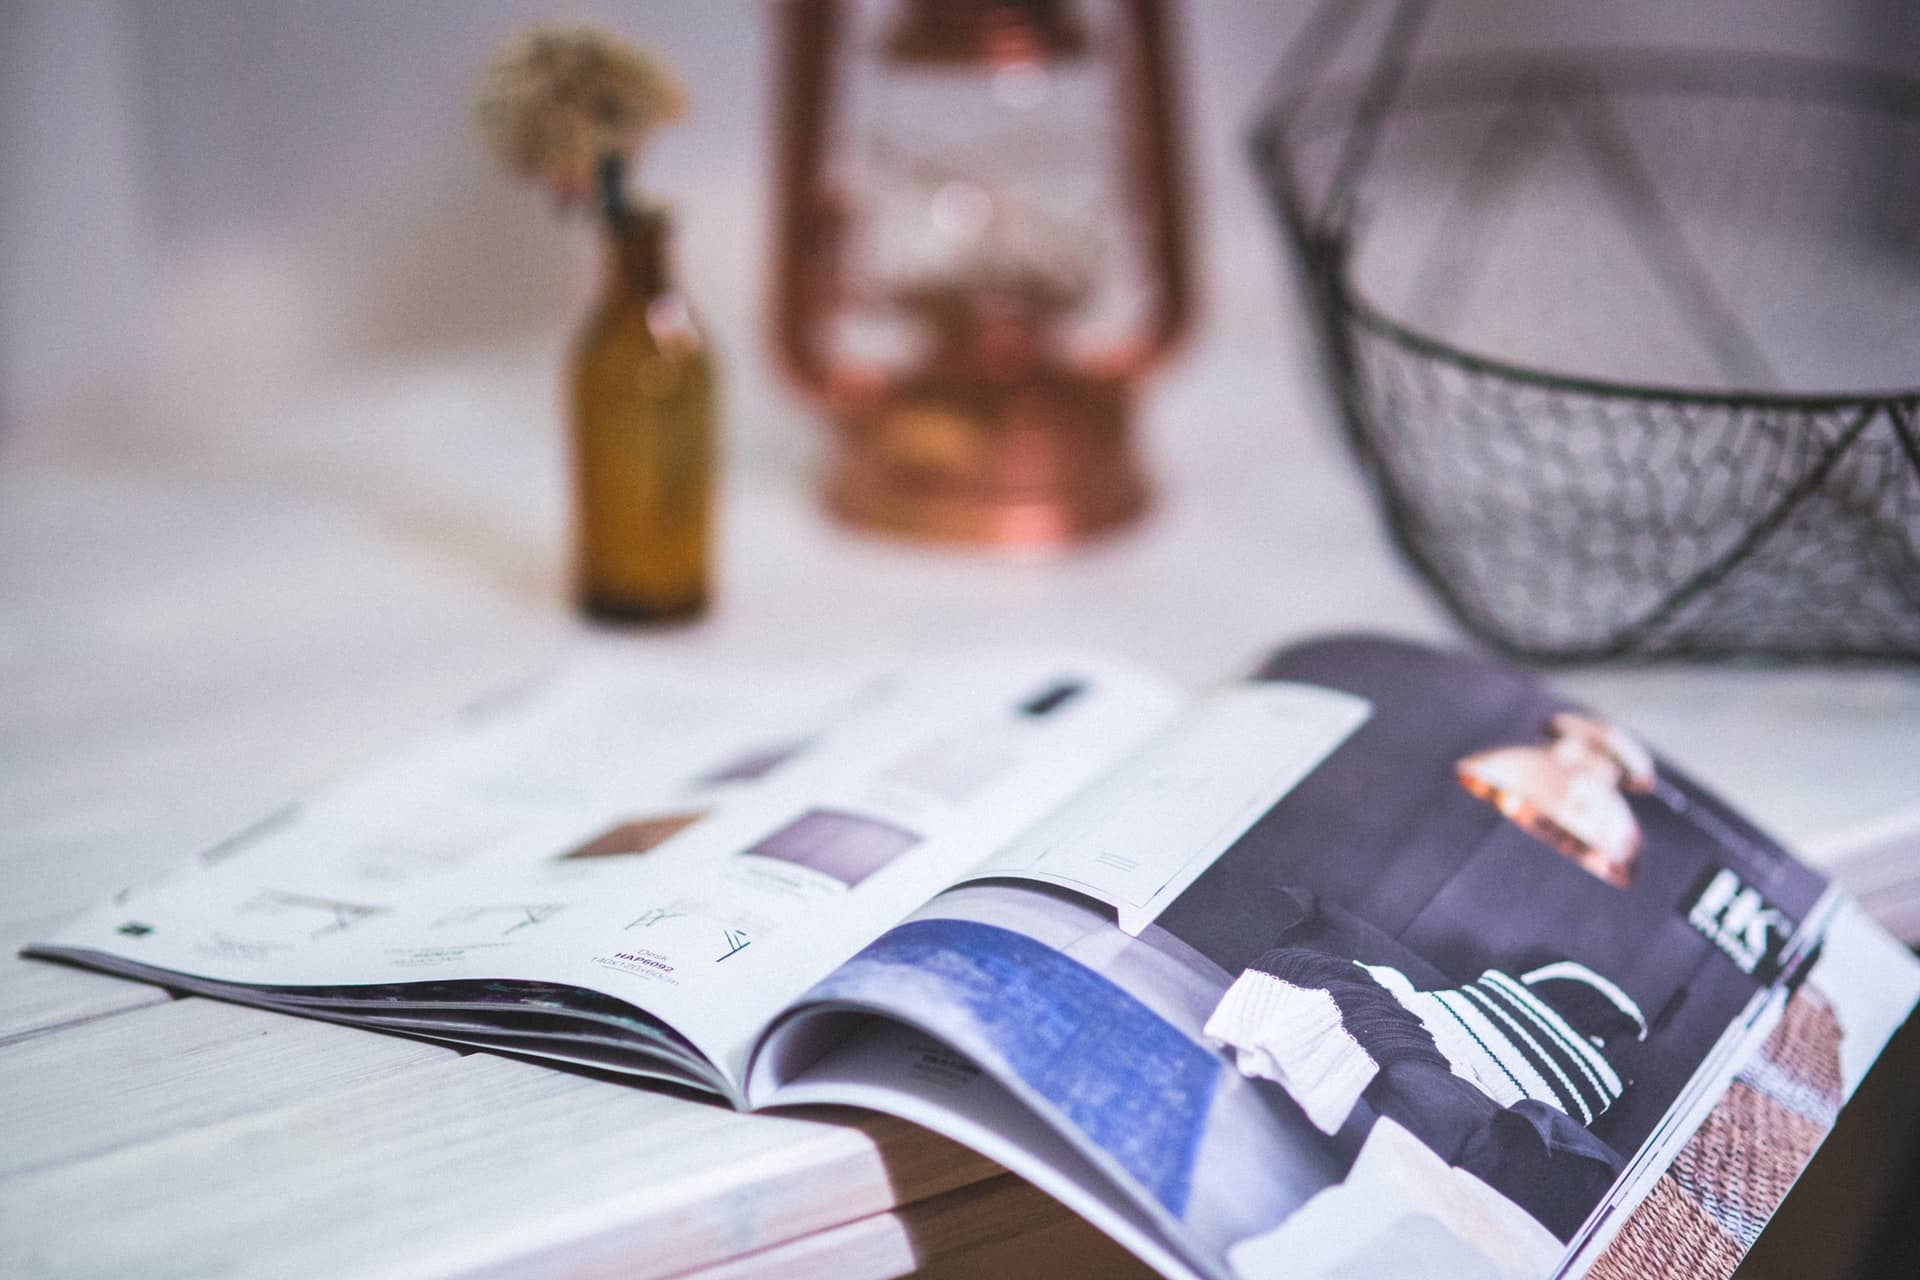 How to Self-publish Magazine to Increase Your Business Exposure